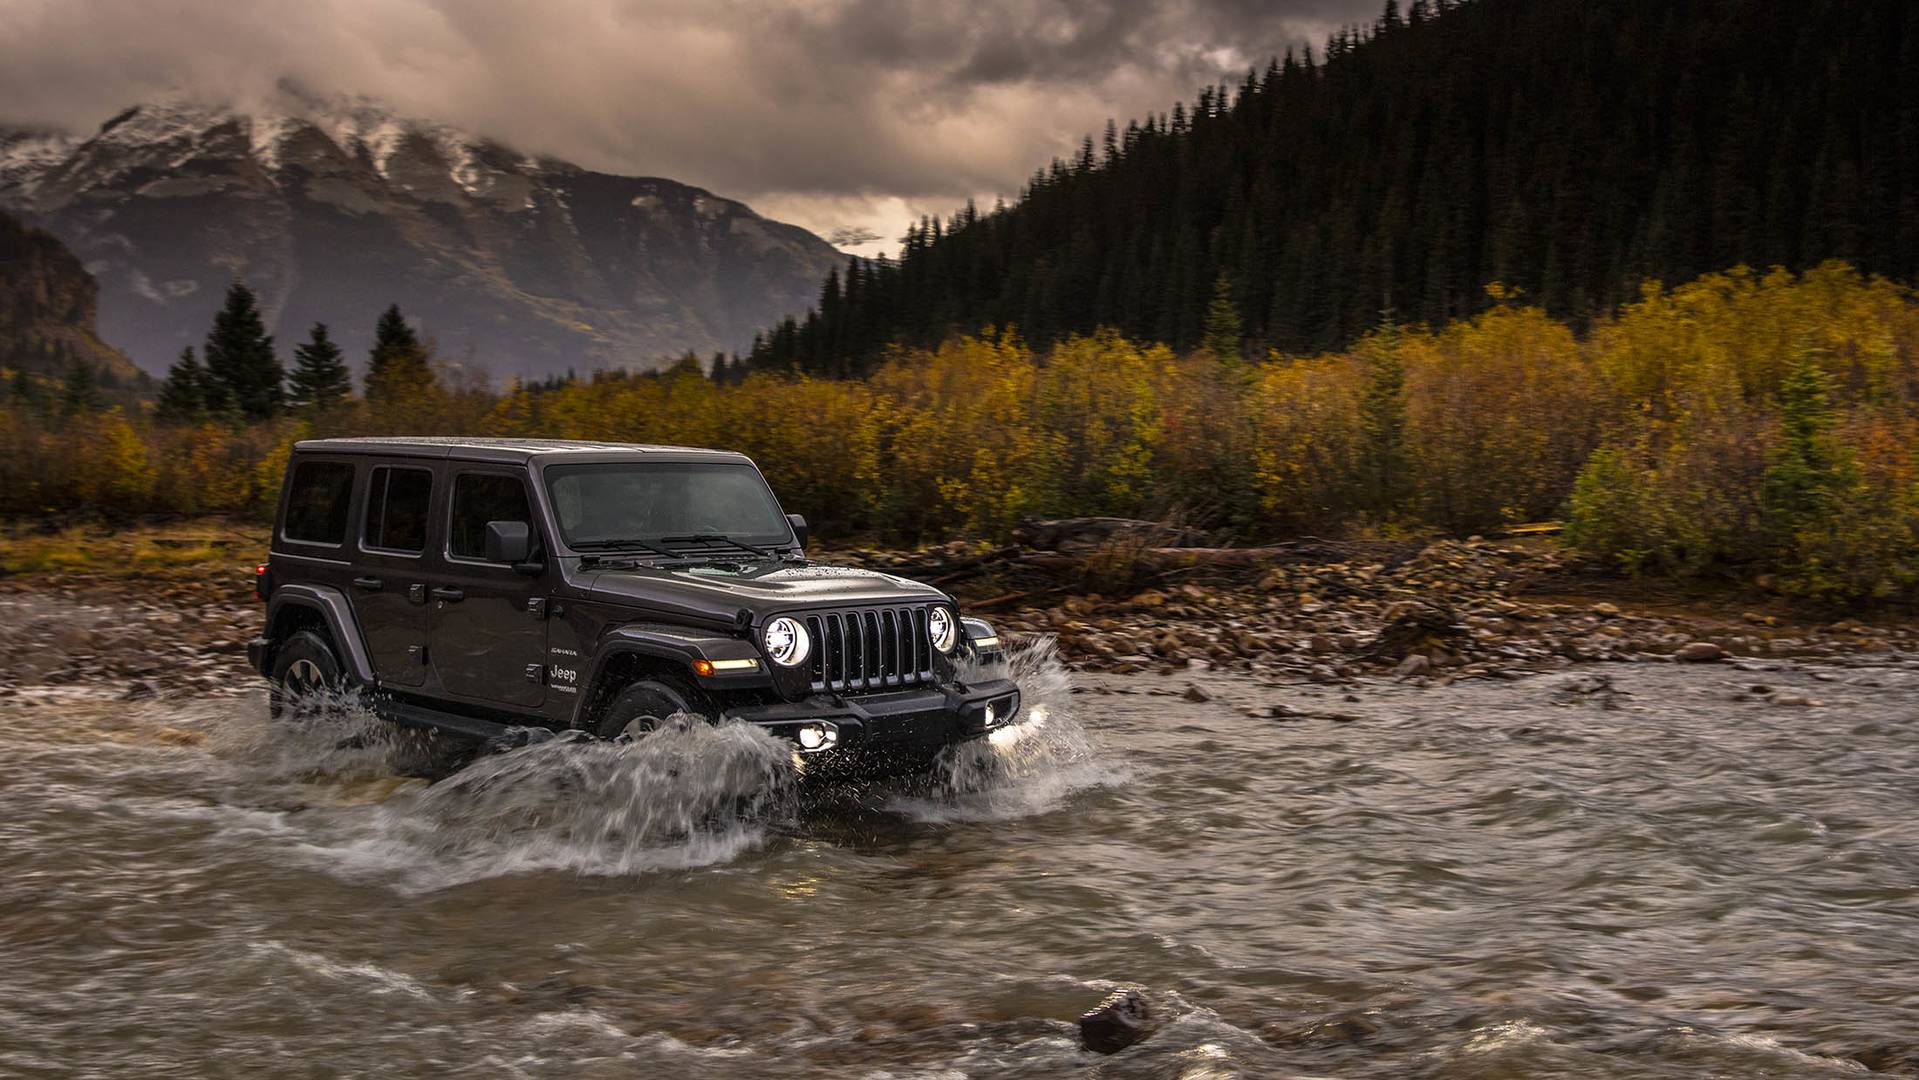 How to Completely Turn Off Stability Control in a Jeep Wrangler JK